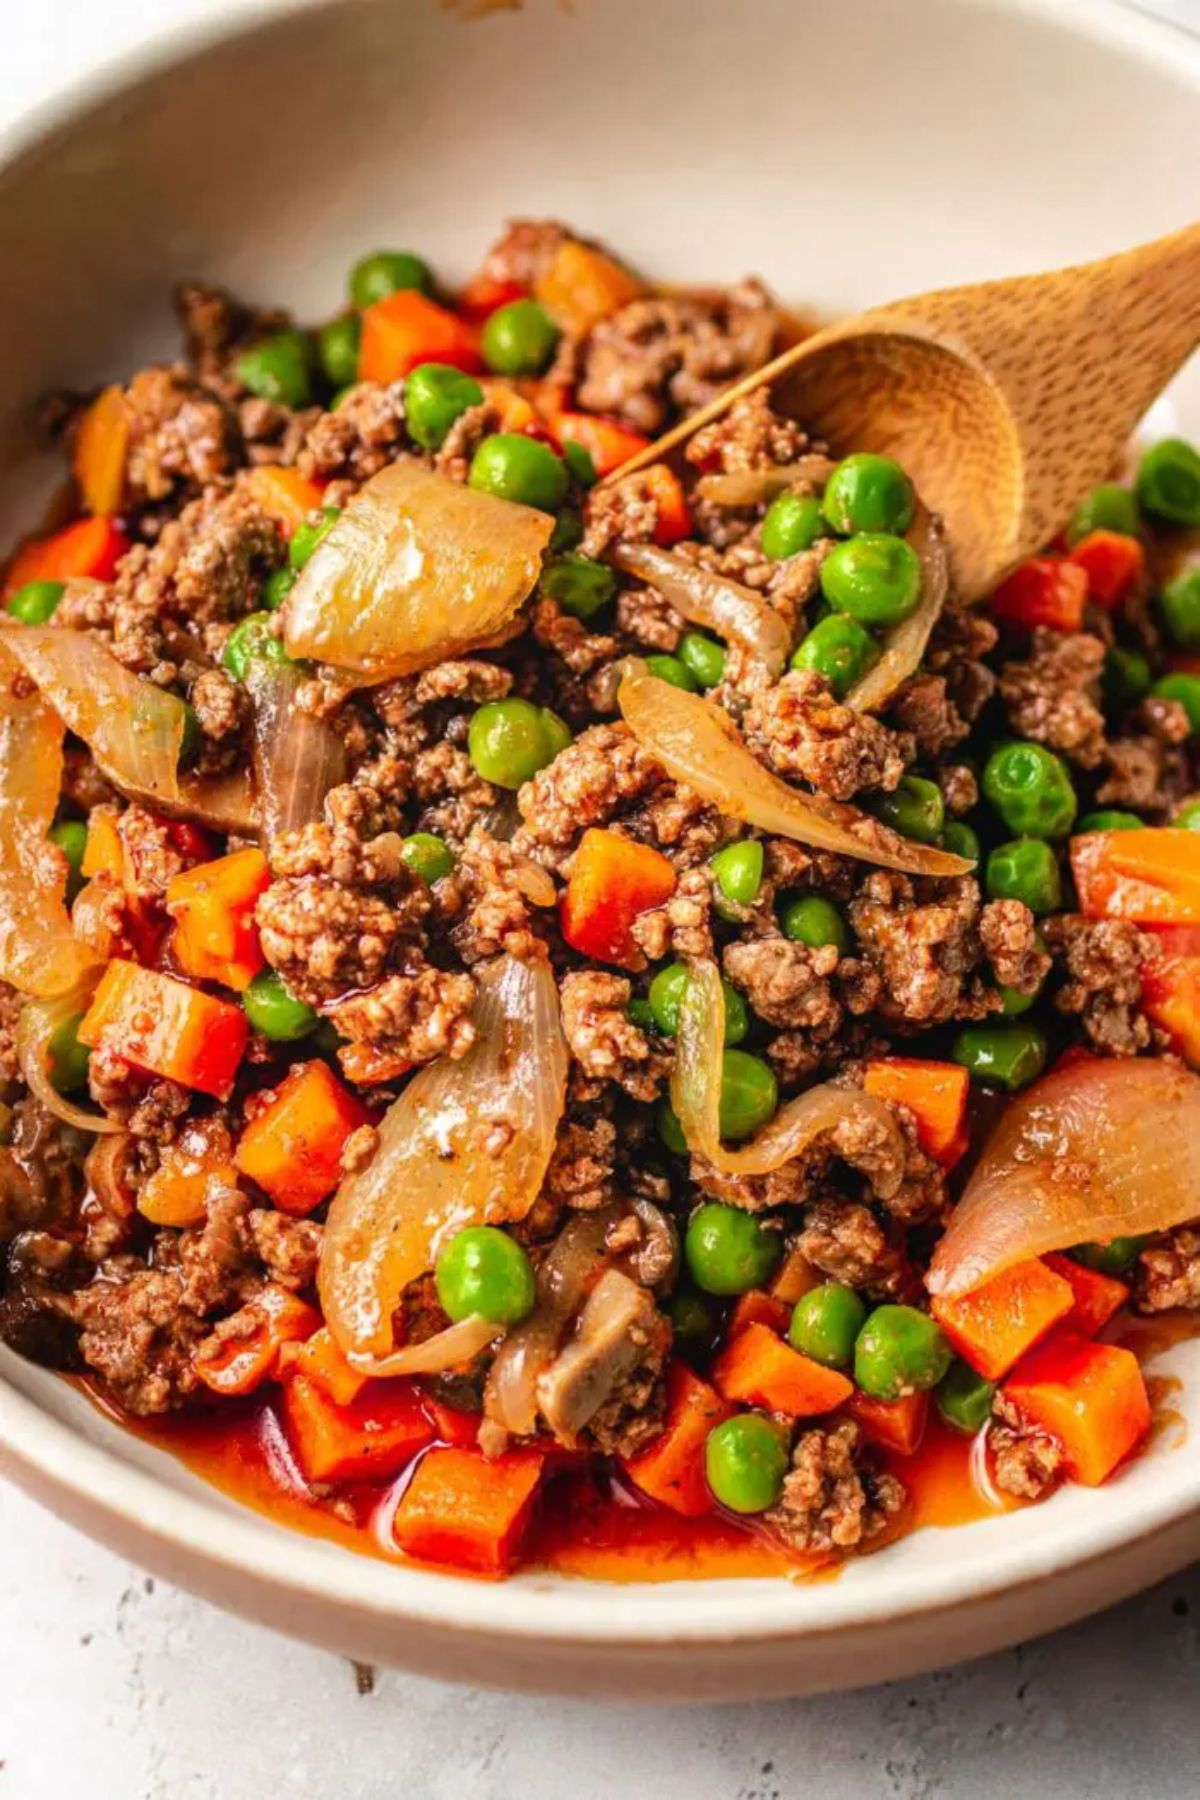 A bowl of ground beef and vegetables in sauce with a wooden spoon sticking into it